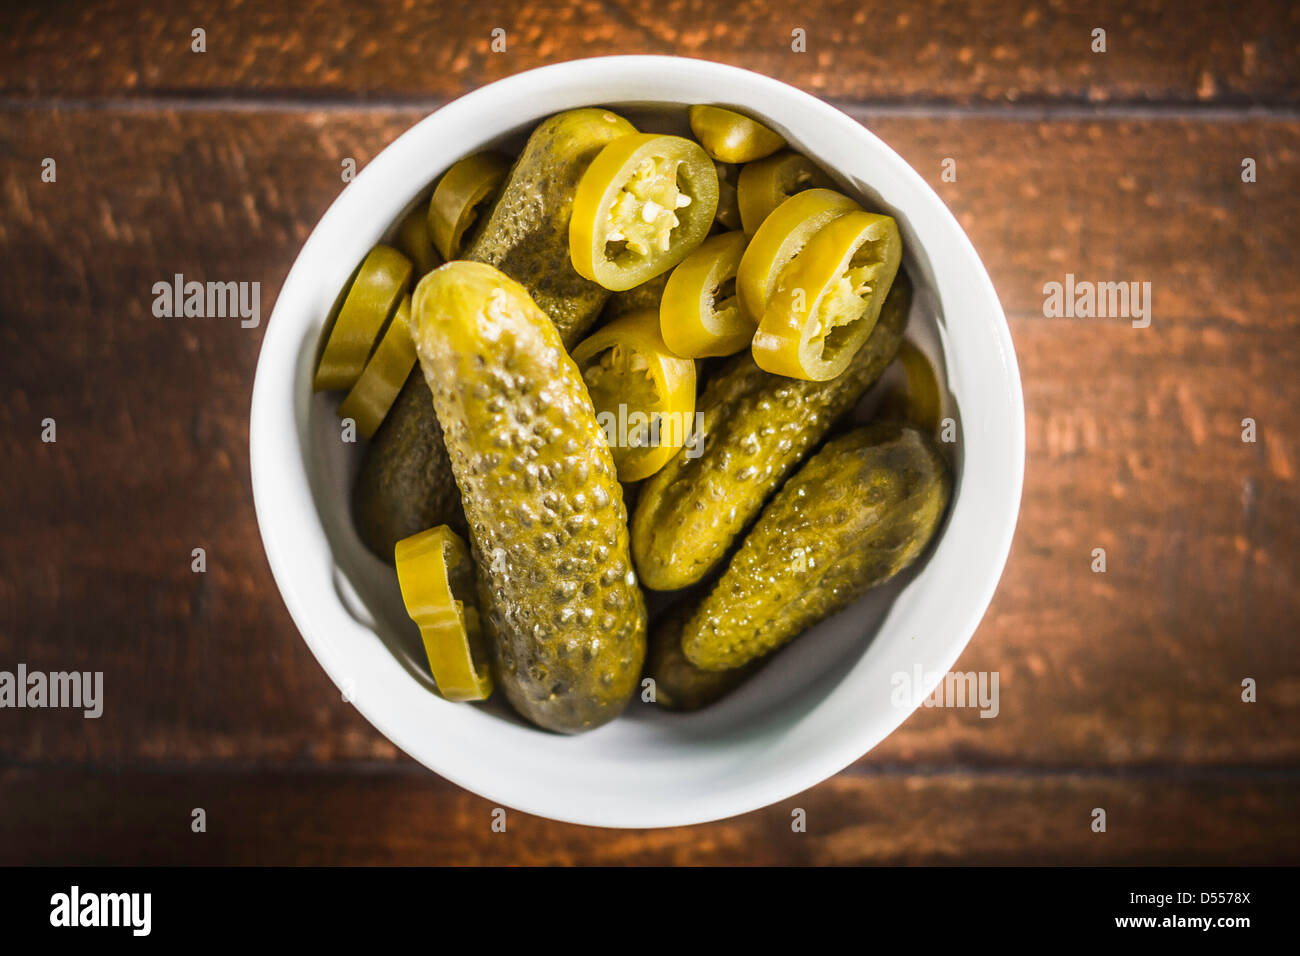 Bowl of pickles and chili pepper slices Stock Photo